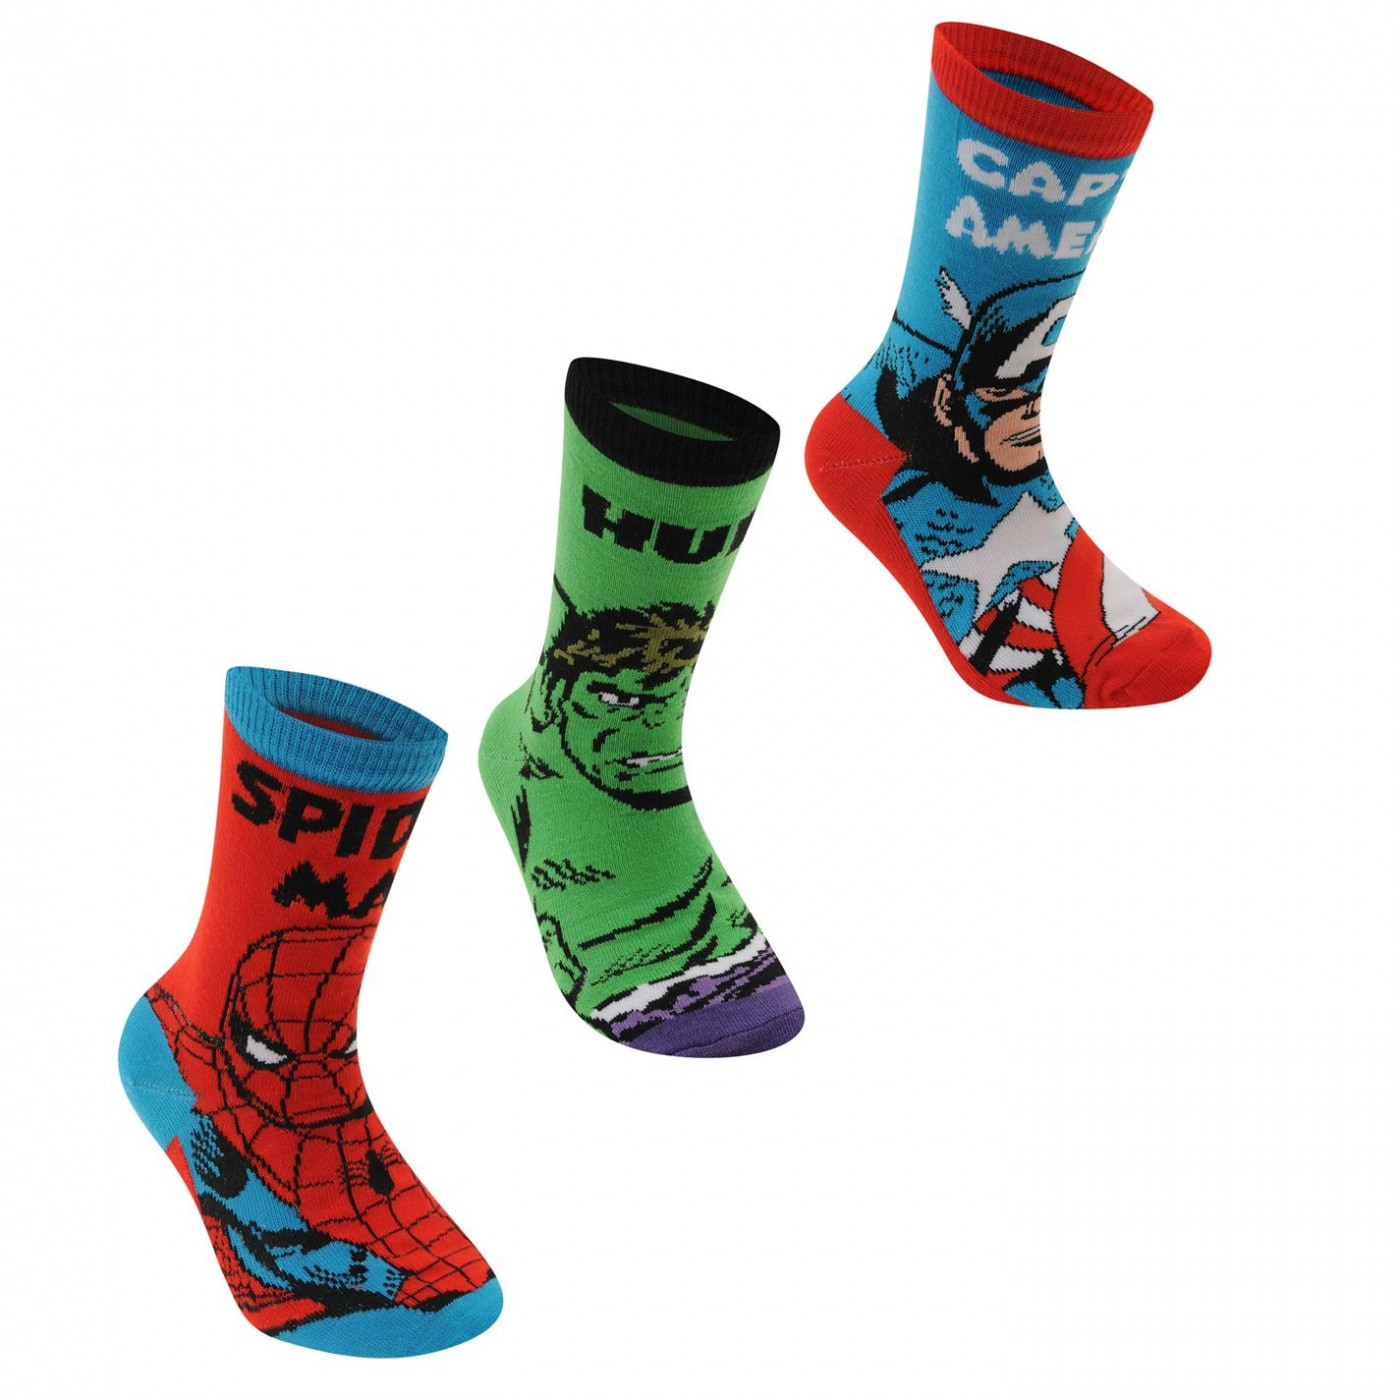 Marvel 3 Pack Crew Socks Childrens